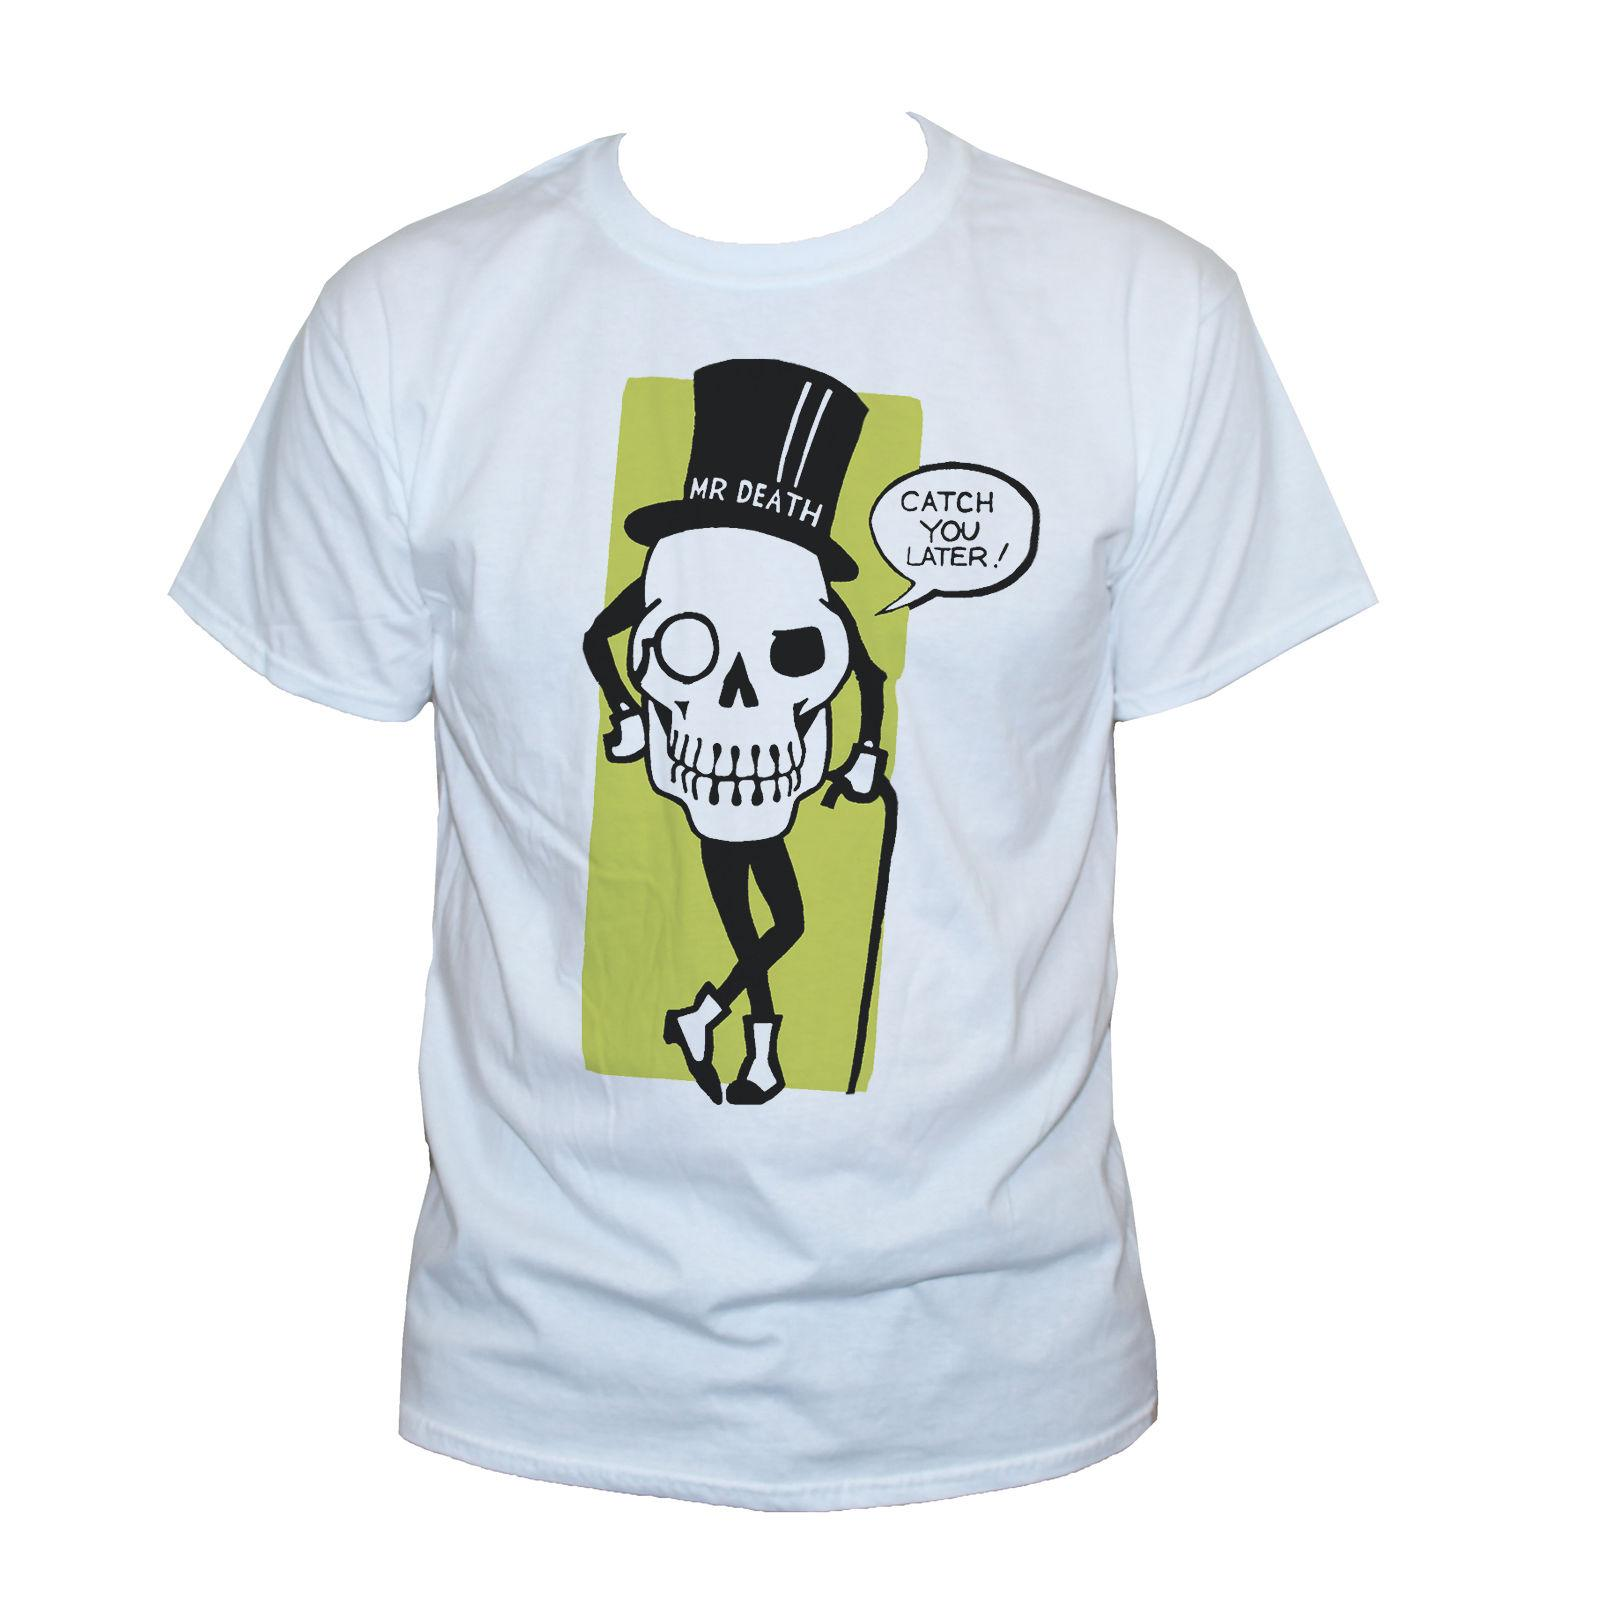 179c4d2c055510 MR DEATH SKULL T SHIRT Goth Funny Quote Party Graphic Printed Retro Tee  Unisex Graphic Tee Shirts T Shirt Sayings From Integrity067